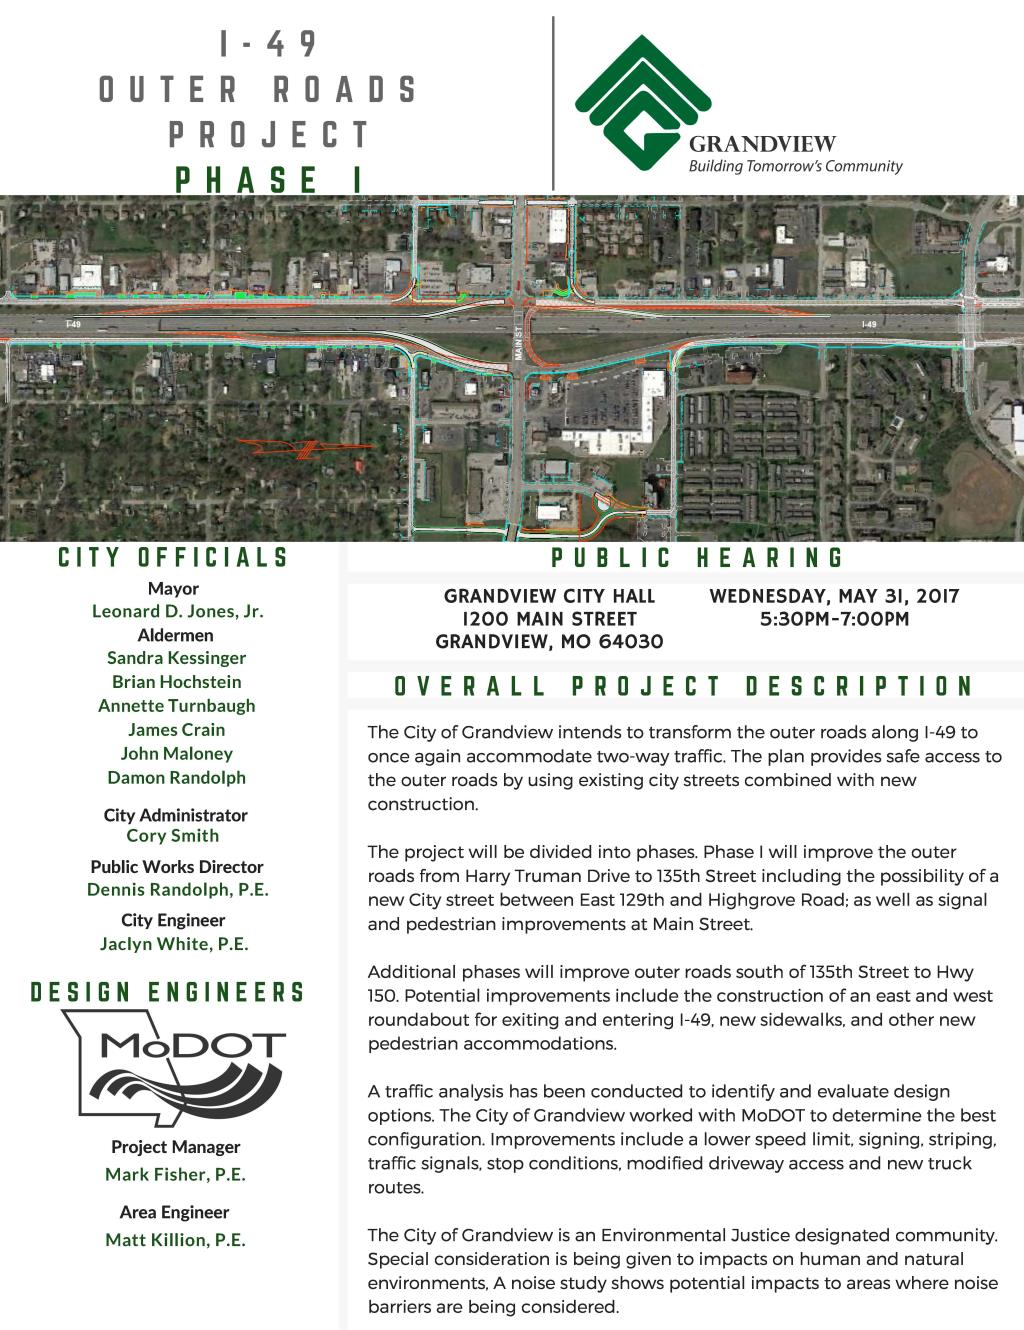 I49 outer roads public hearing fact sheet_Page_1